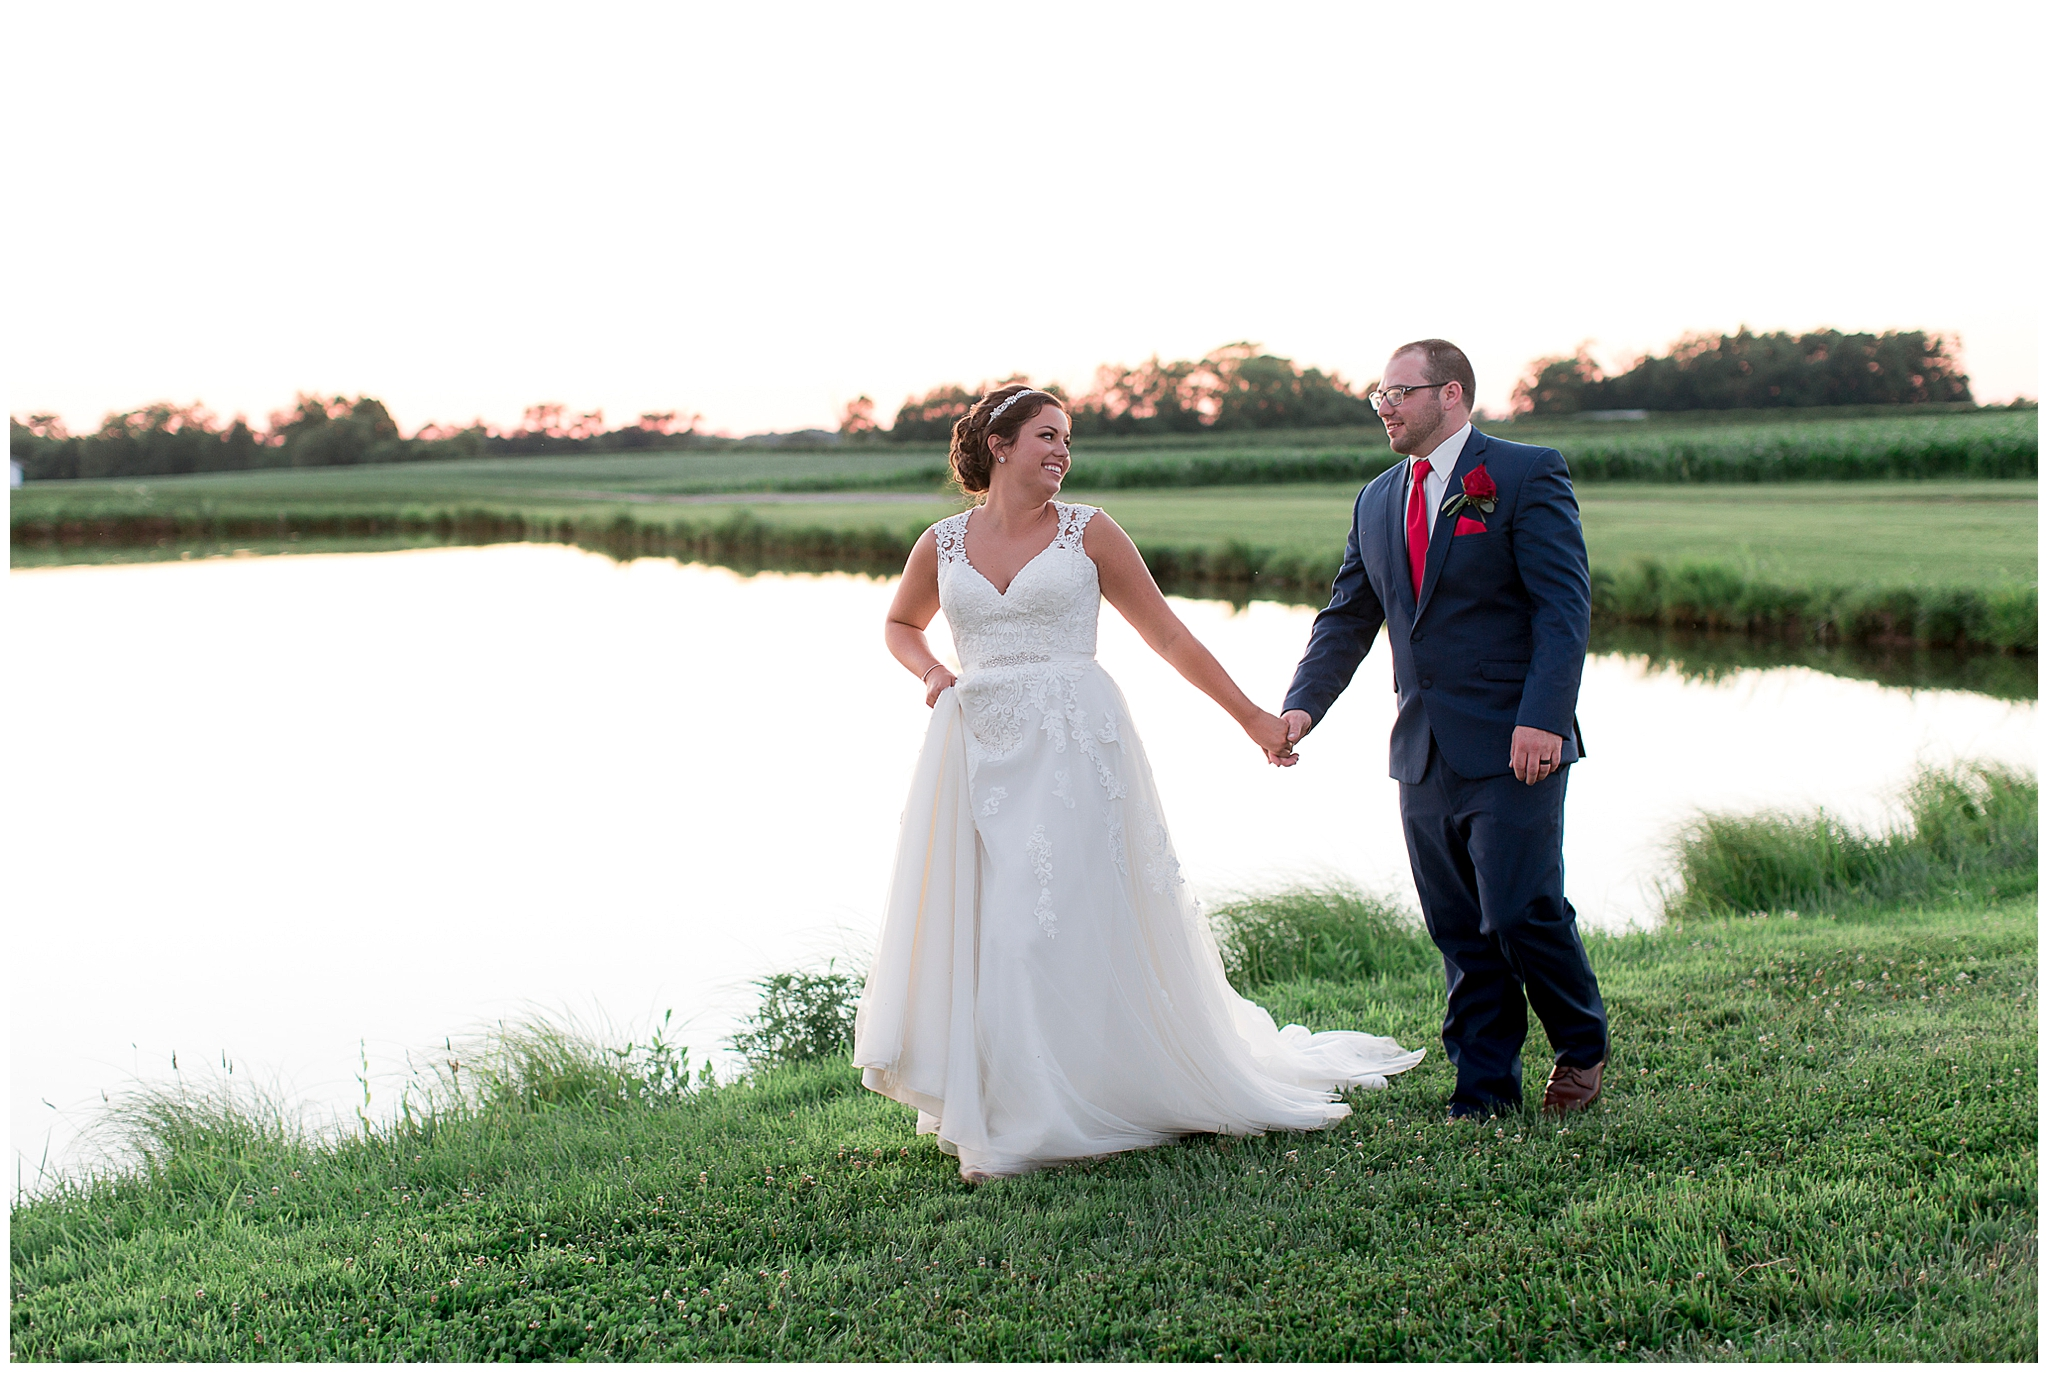 When I said I was finished blogging all of my 2018 weddings I wasn't telling the full truth. I was holding this one for the 4th of July because this wedding took place during 4th of July weekend last year. Wendy and John got married on July 7, 2018 at Gallrein Farms in Shelbyville, Ky. This wedding was full of red, white and blue from the grooms socks, to the red bridesmaid dresses and navy groomsmen suits. The day ended with a beautiful sunset and pictures by the water. Wendy's dad even brought down his 69 Camero Z28 to snap a few pictures with. Everything about this day was exactly the way Wendy and John wanted it and it was perfect. Happy 4th of July everyone, I hope you all enjoy this wedding :)